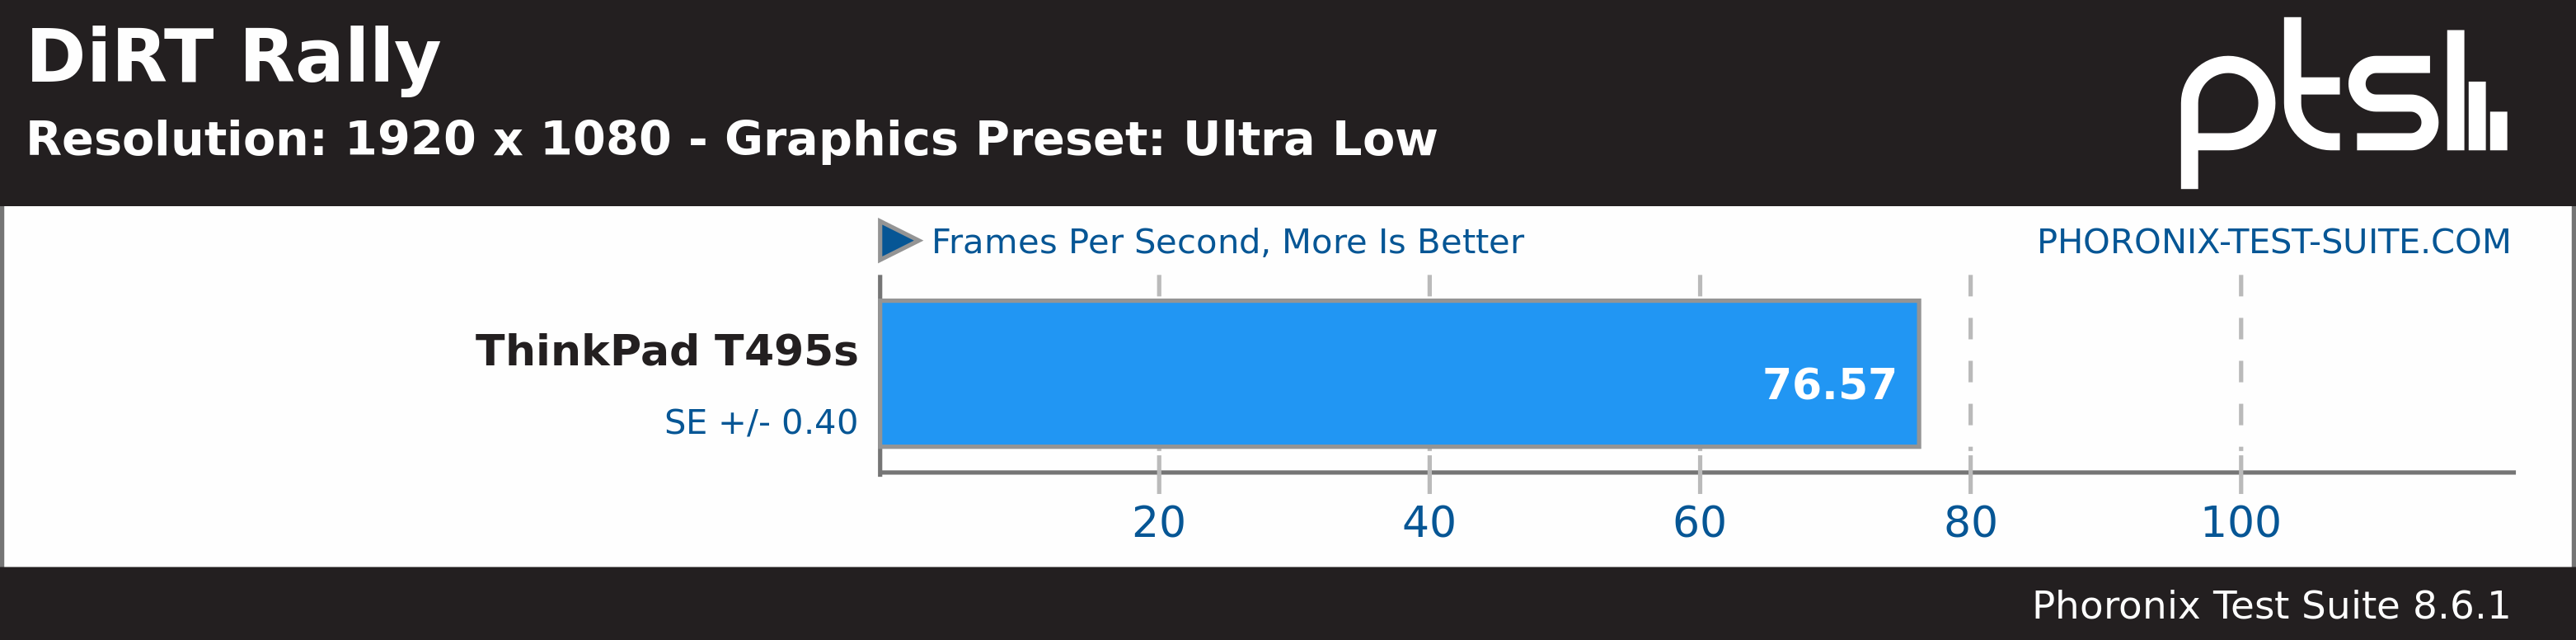 DiRT Rally Ultra Low Benchmark